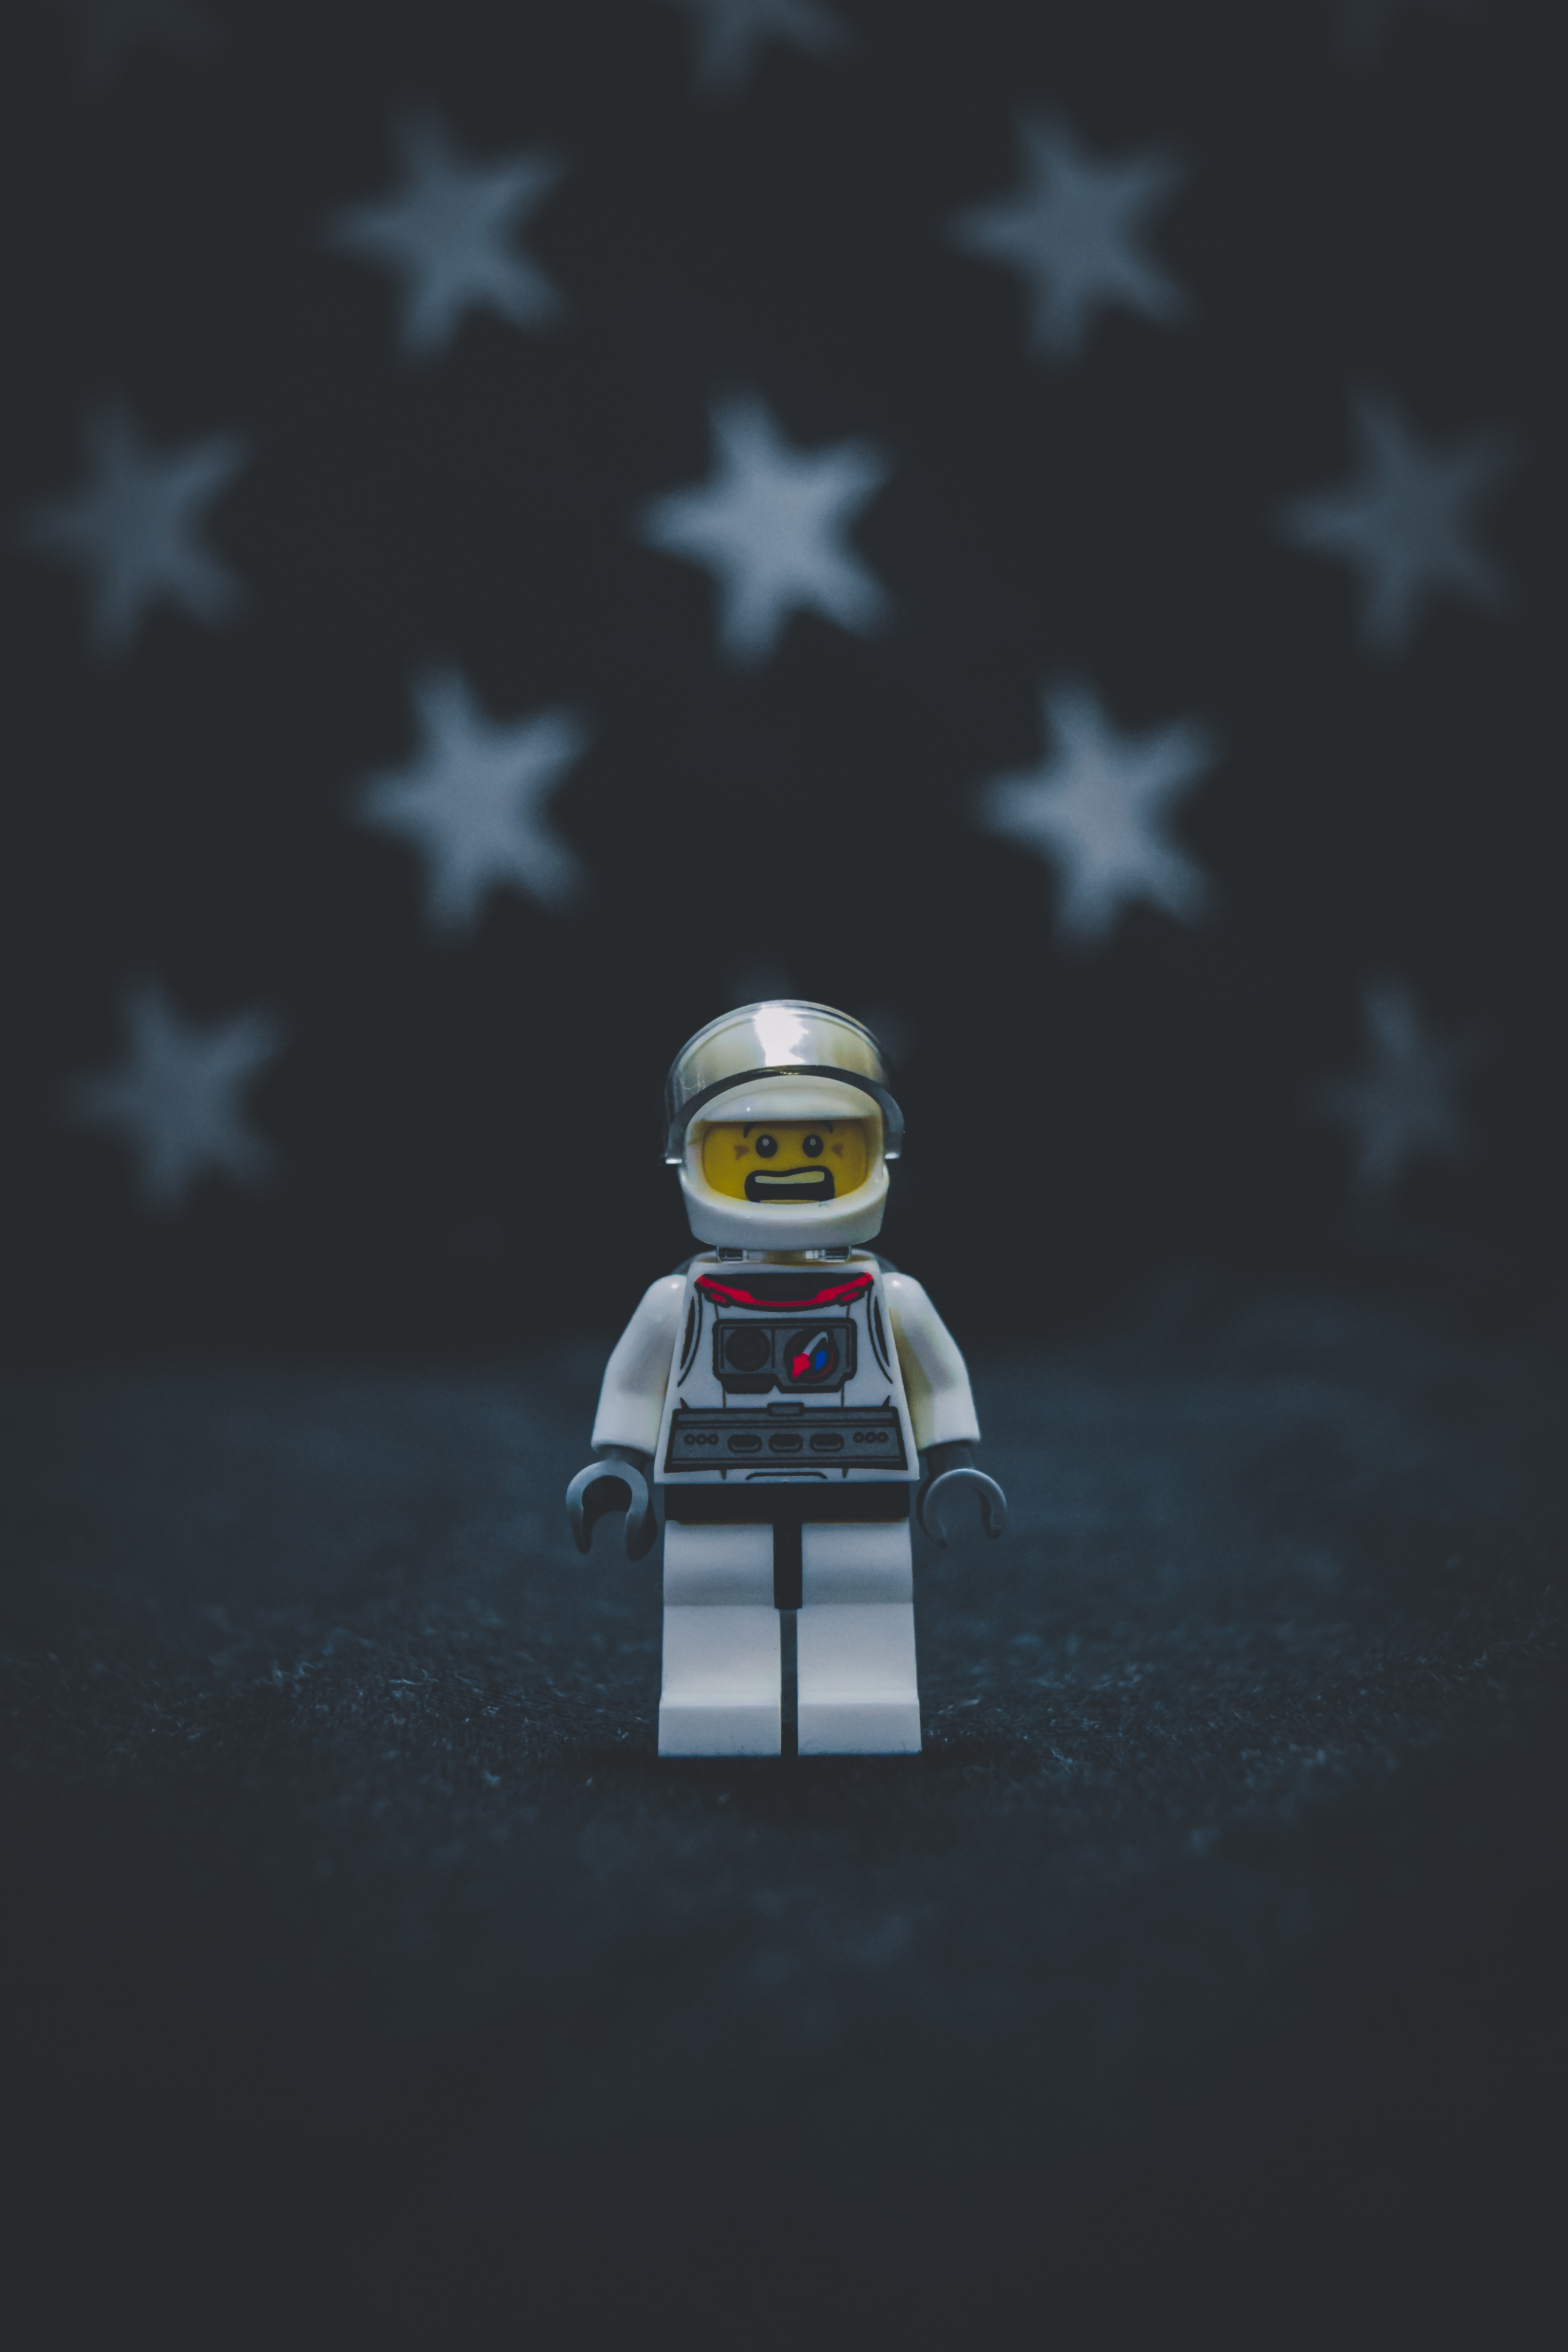 selective focus photography of of Lego minifig toy